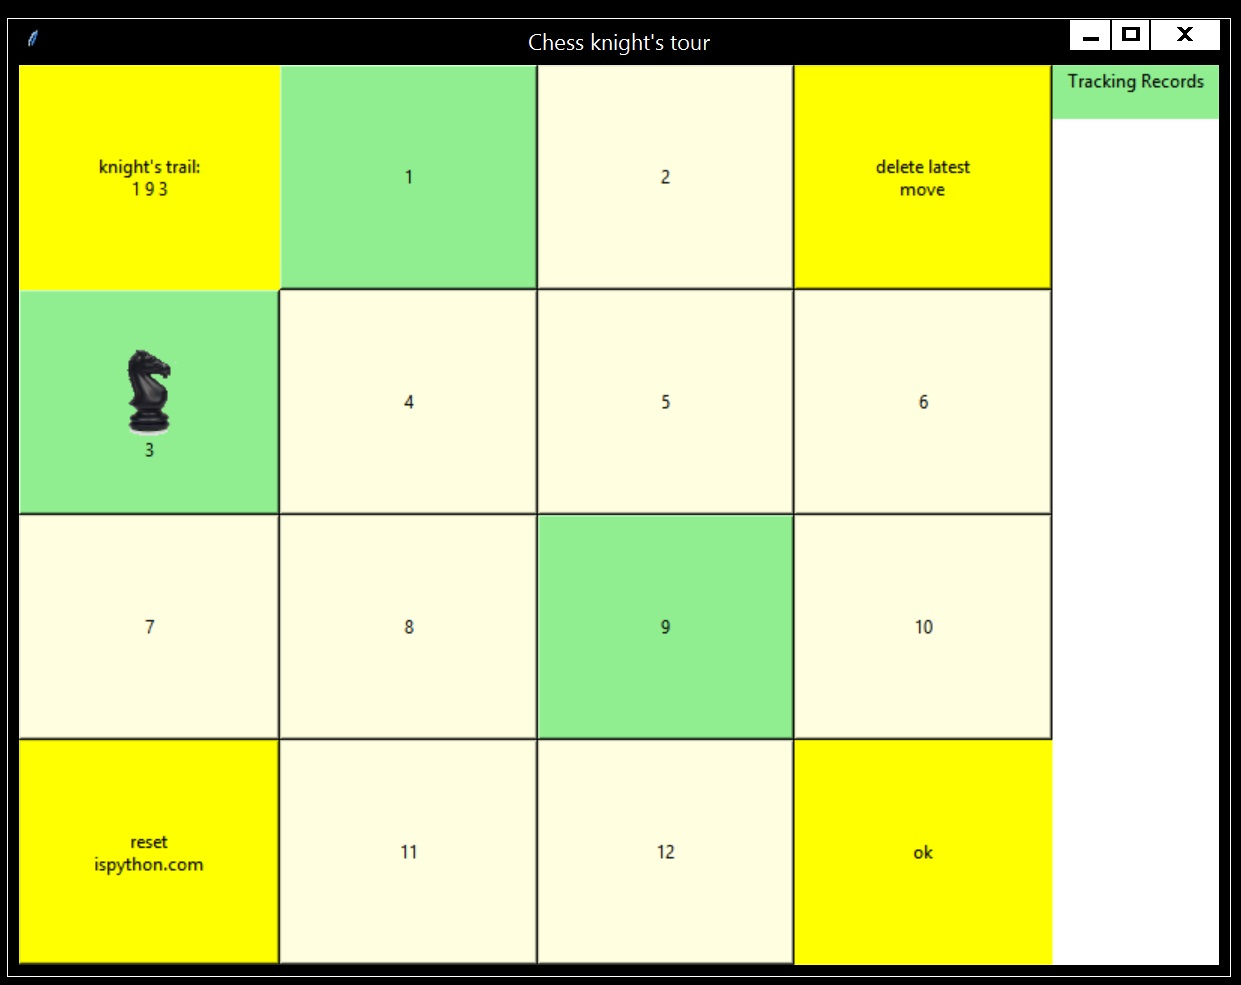 App: knight's tour board 1-12. Trail so far 1,9,3... Download python program from repositorykt